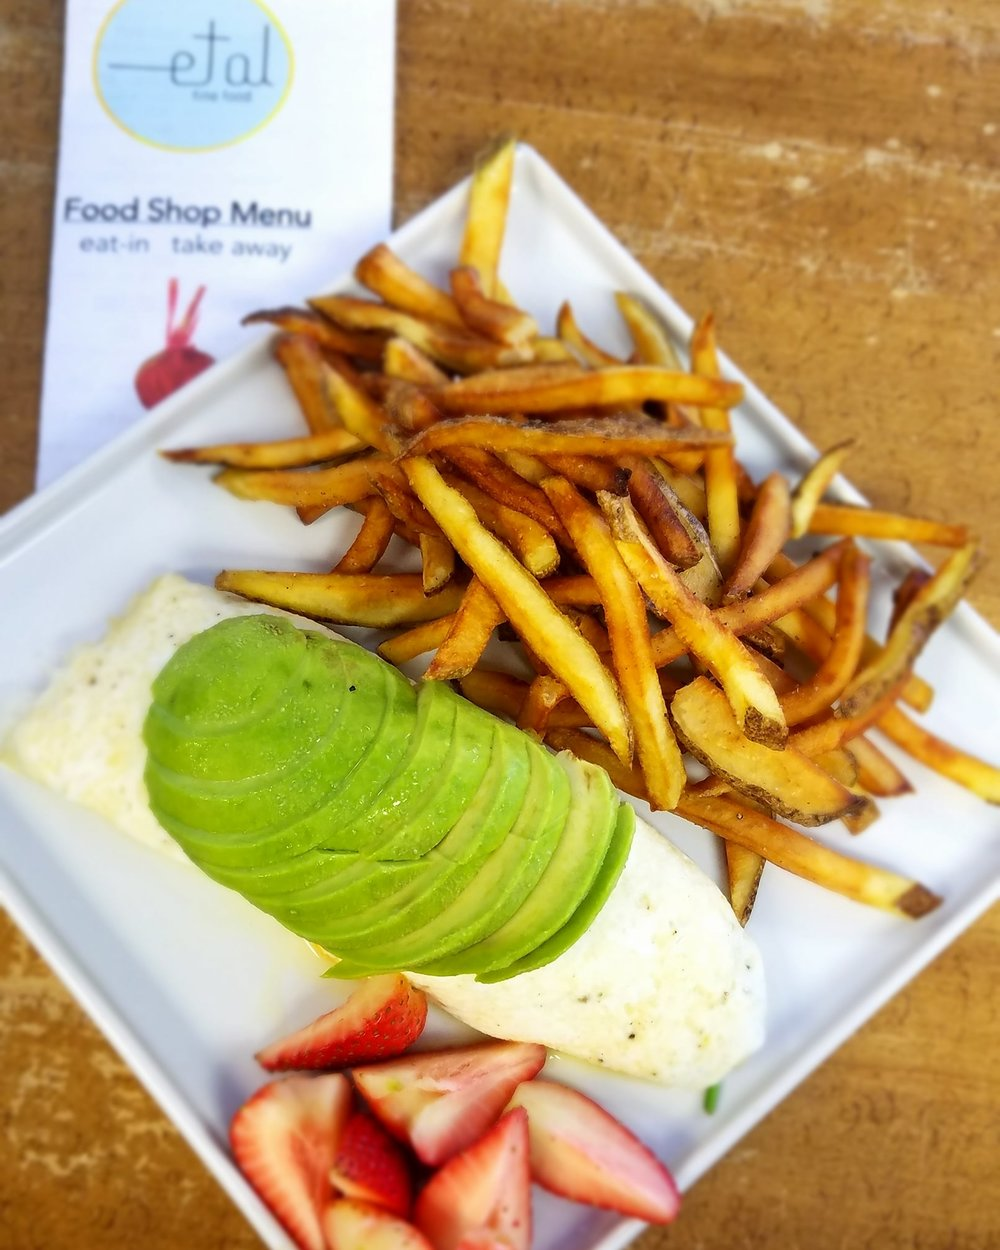 Egg white, spinach and cheese omelet with sliced avocado on top and a side of fresh fruit and hand cut french fries.